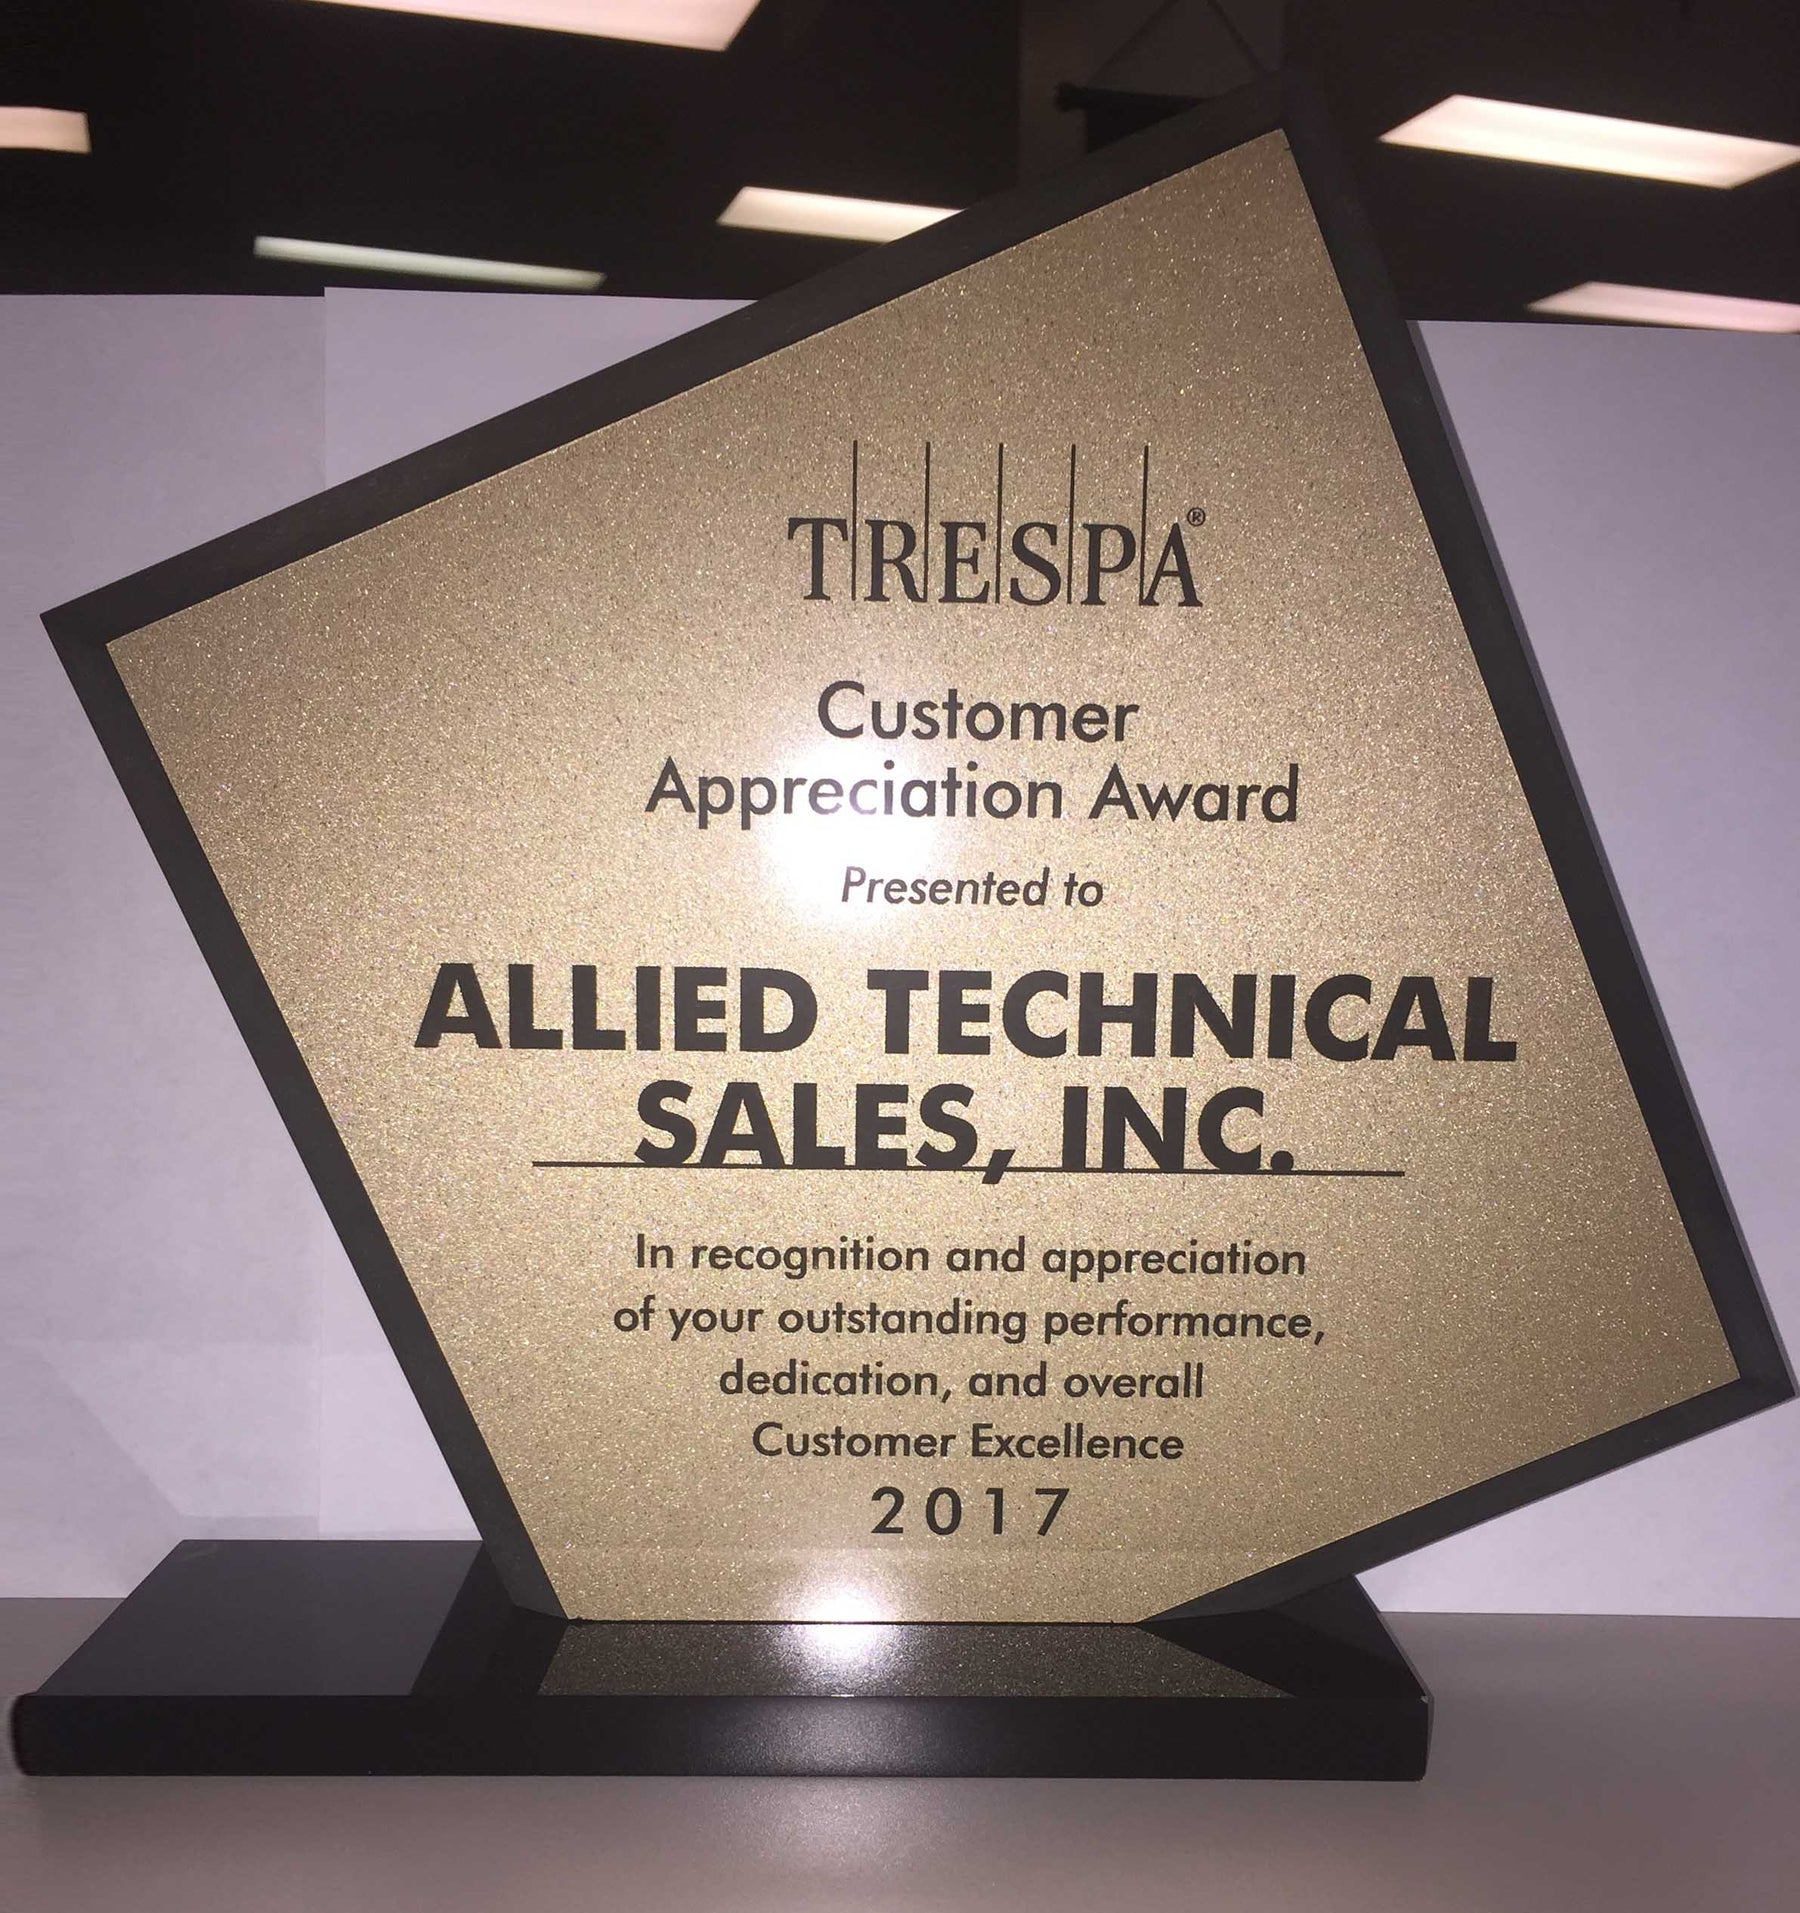 Allied Technical Sales receives Customer Excellence Award